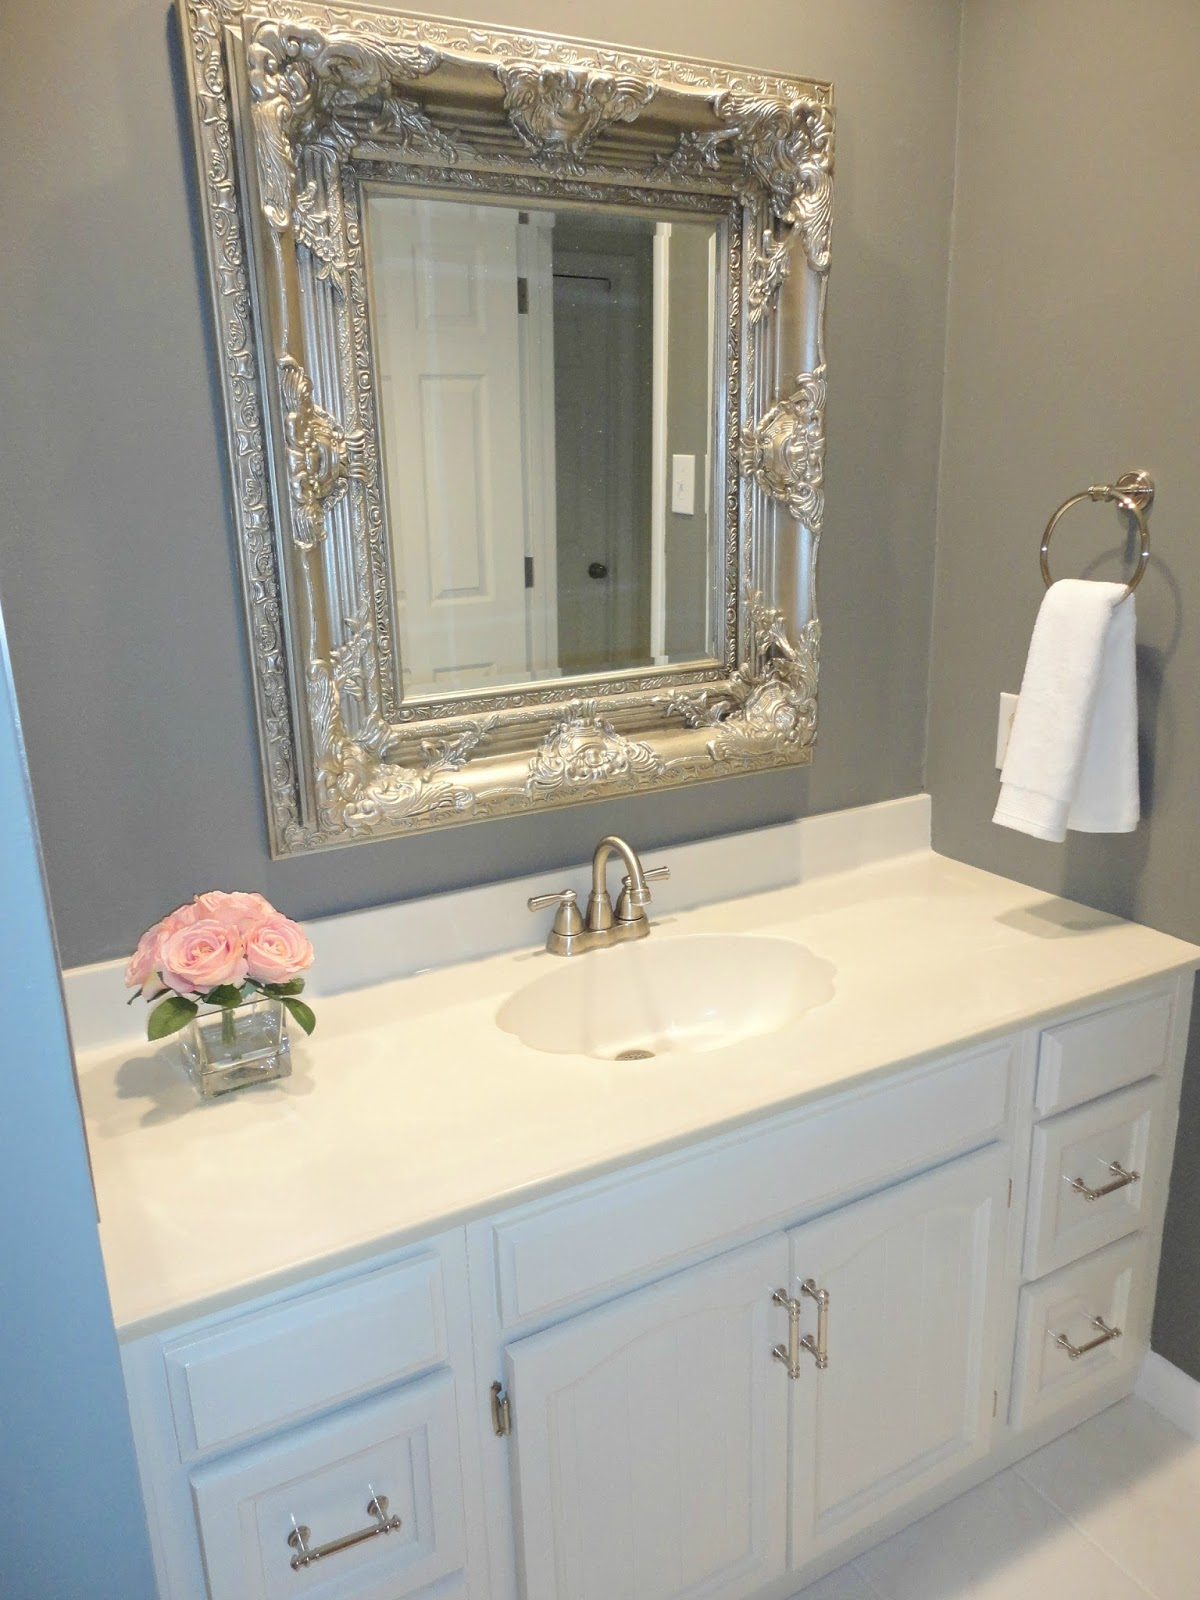 Marvelous DIY Bathroom Remodel on a Budget